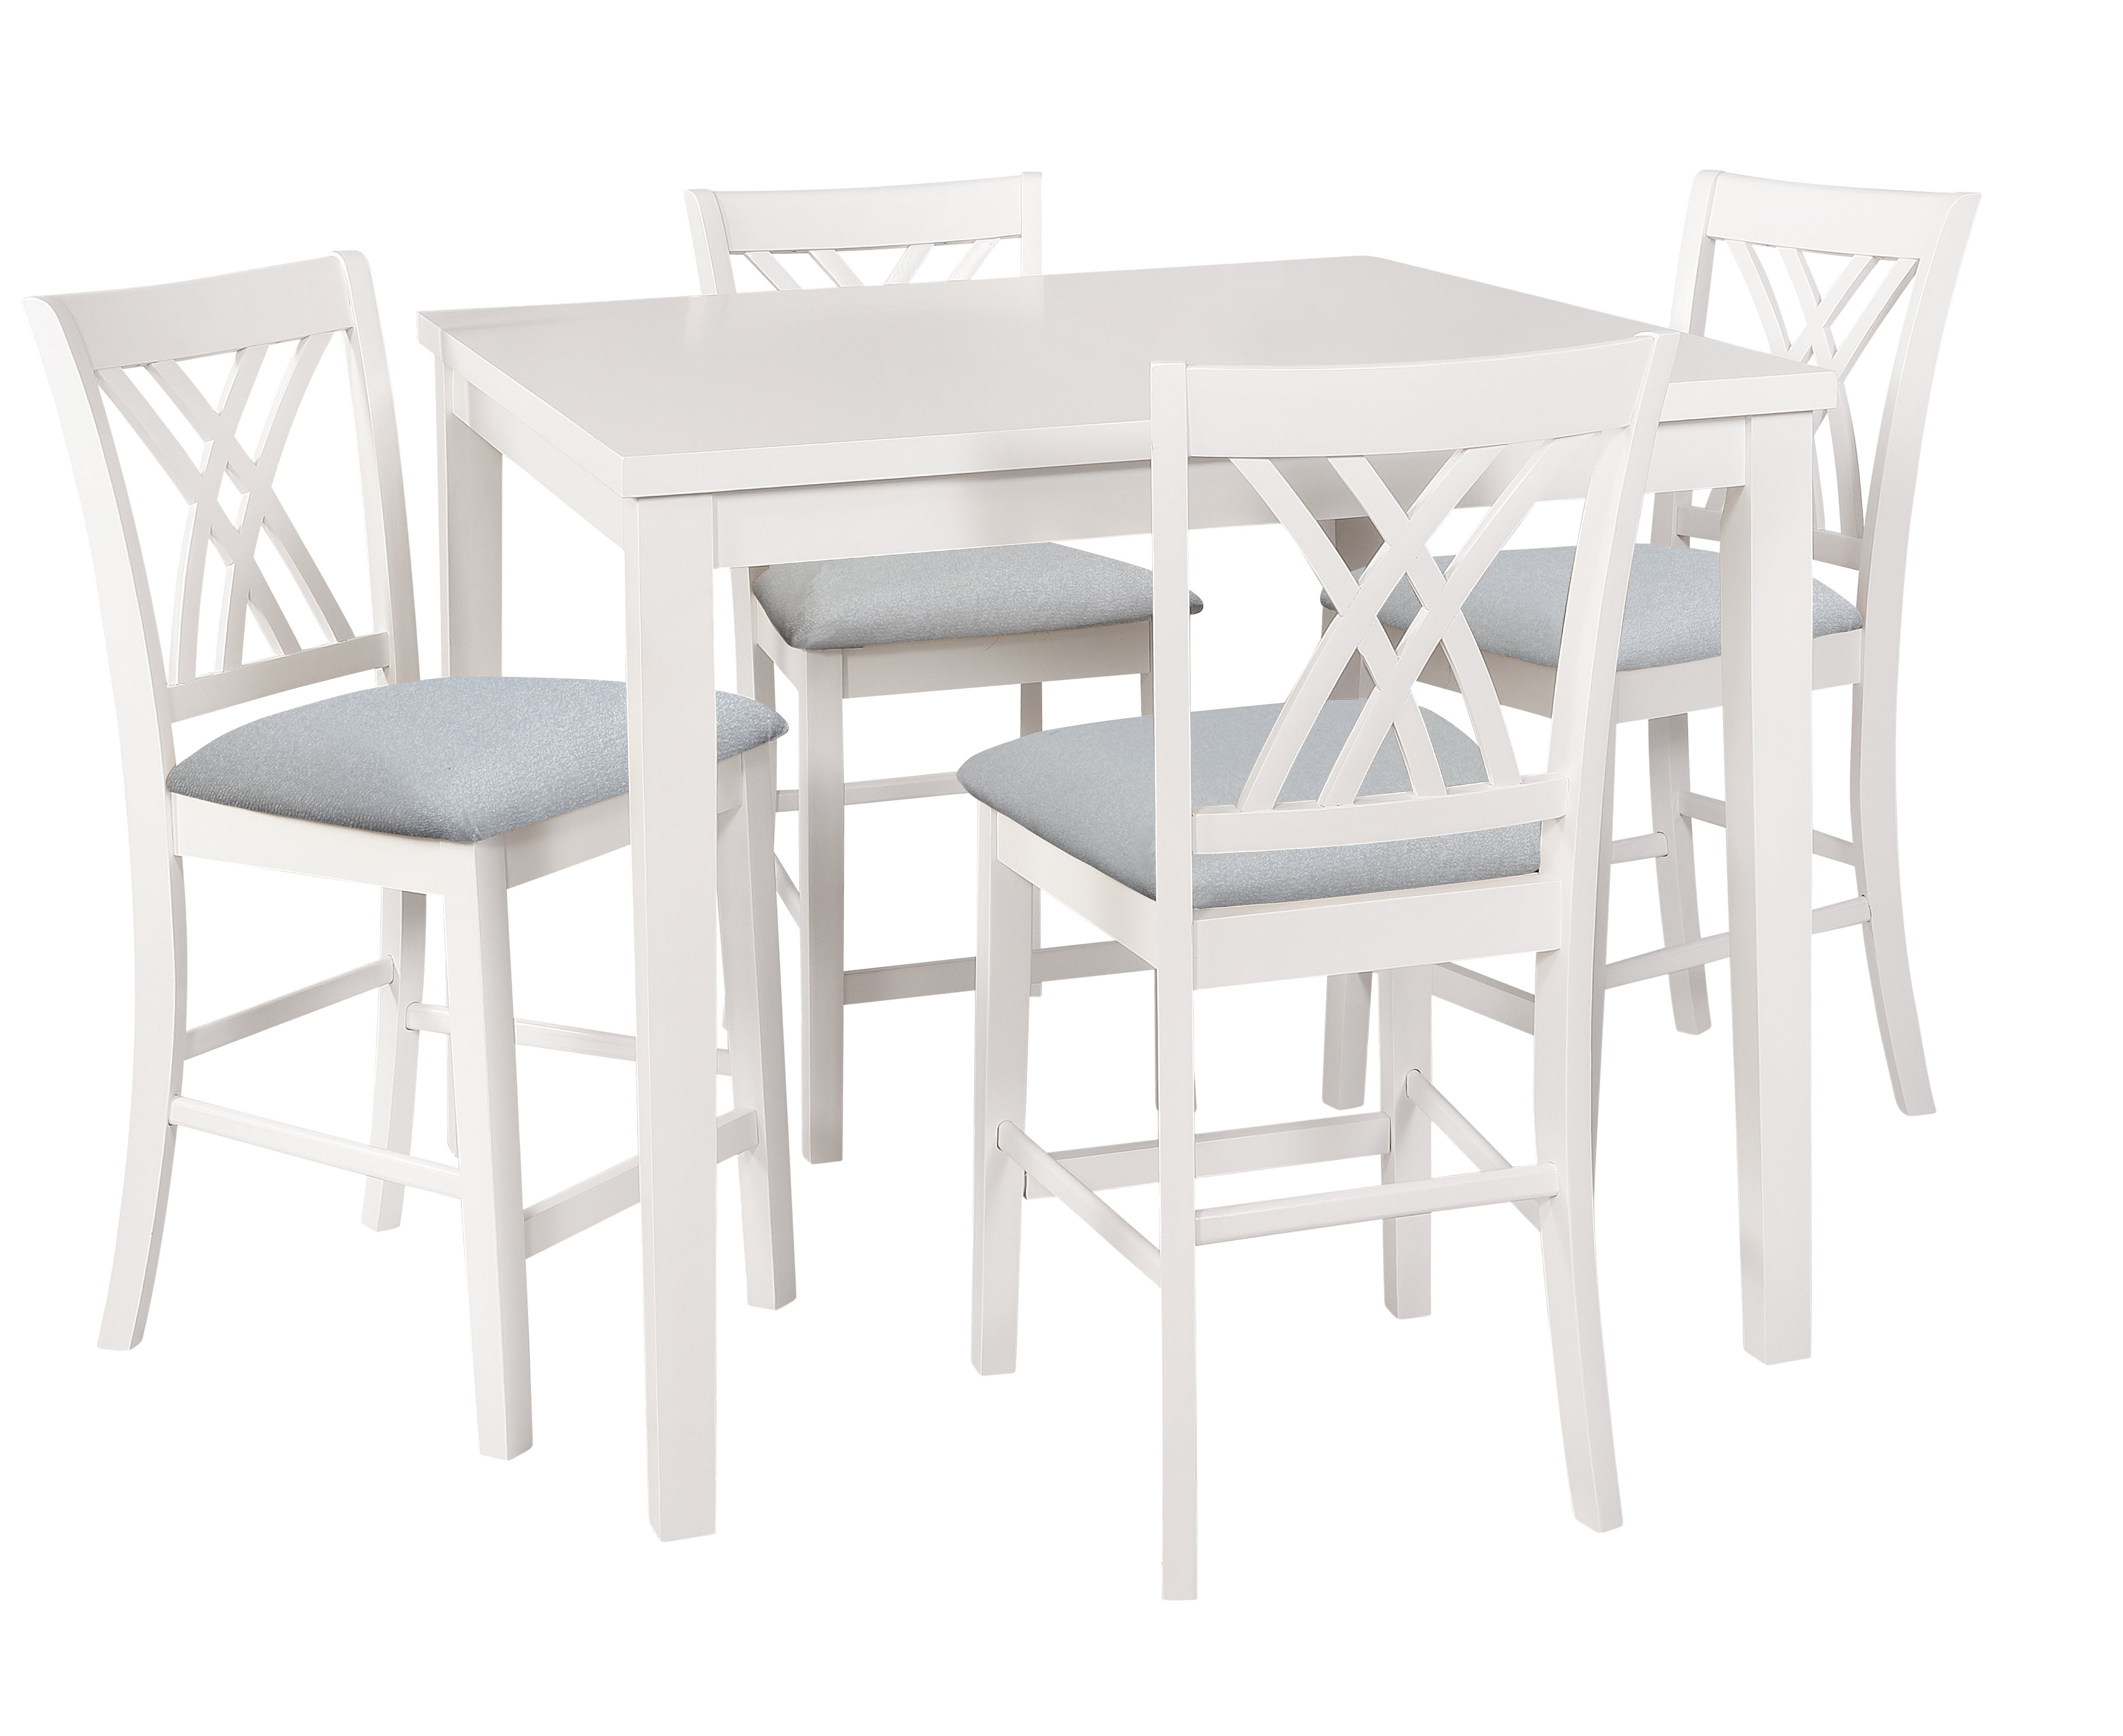 Newest Highland Dunes Gisella 5 Piece Breakfast Nook Dining Set & Reviews Pertaining To 5 Piece Breakfast Nook Dining Sets (#11 of 20)